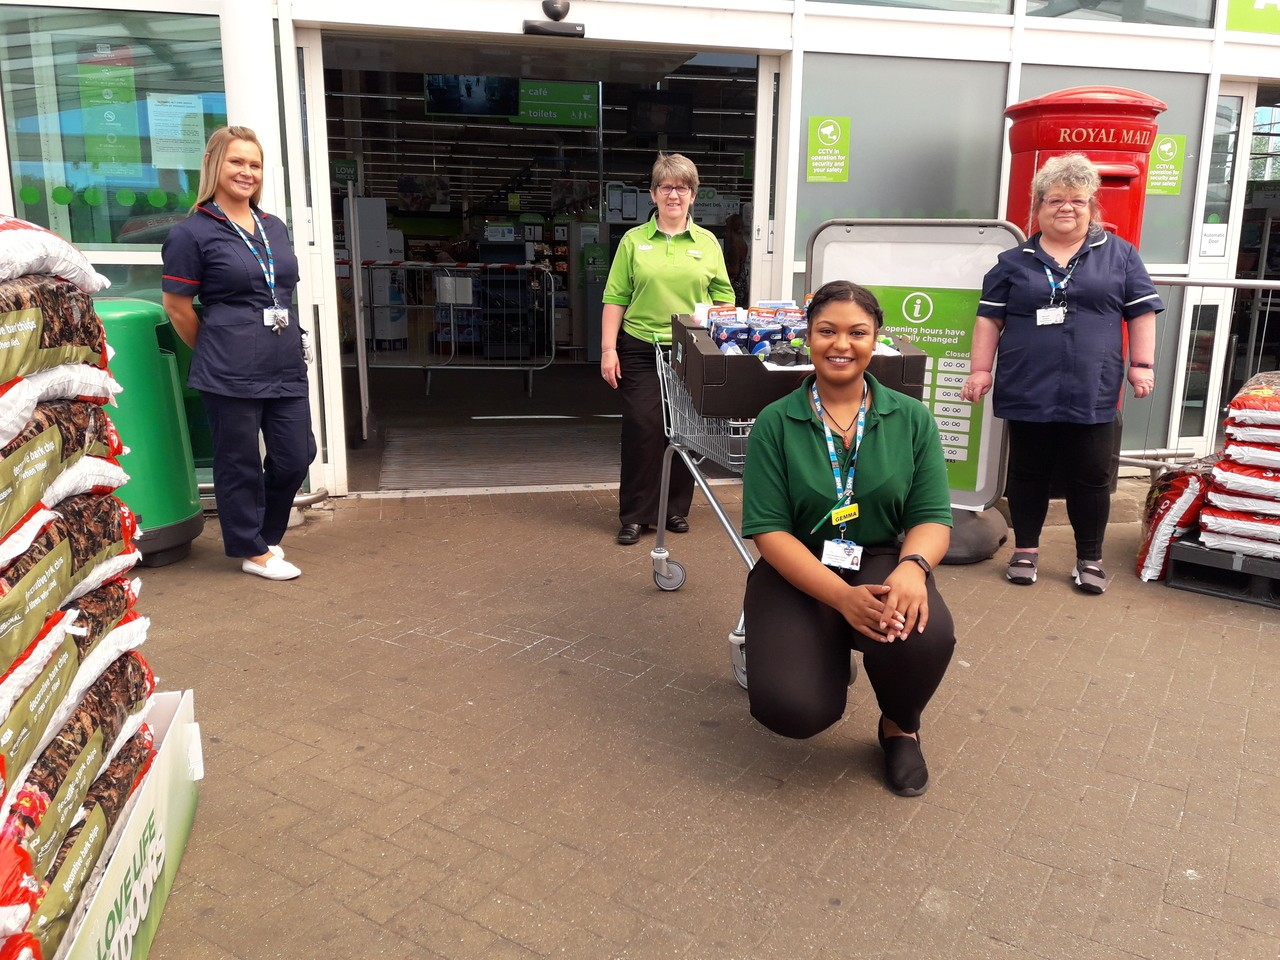 Hospital donation | Asda Darlaston